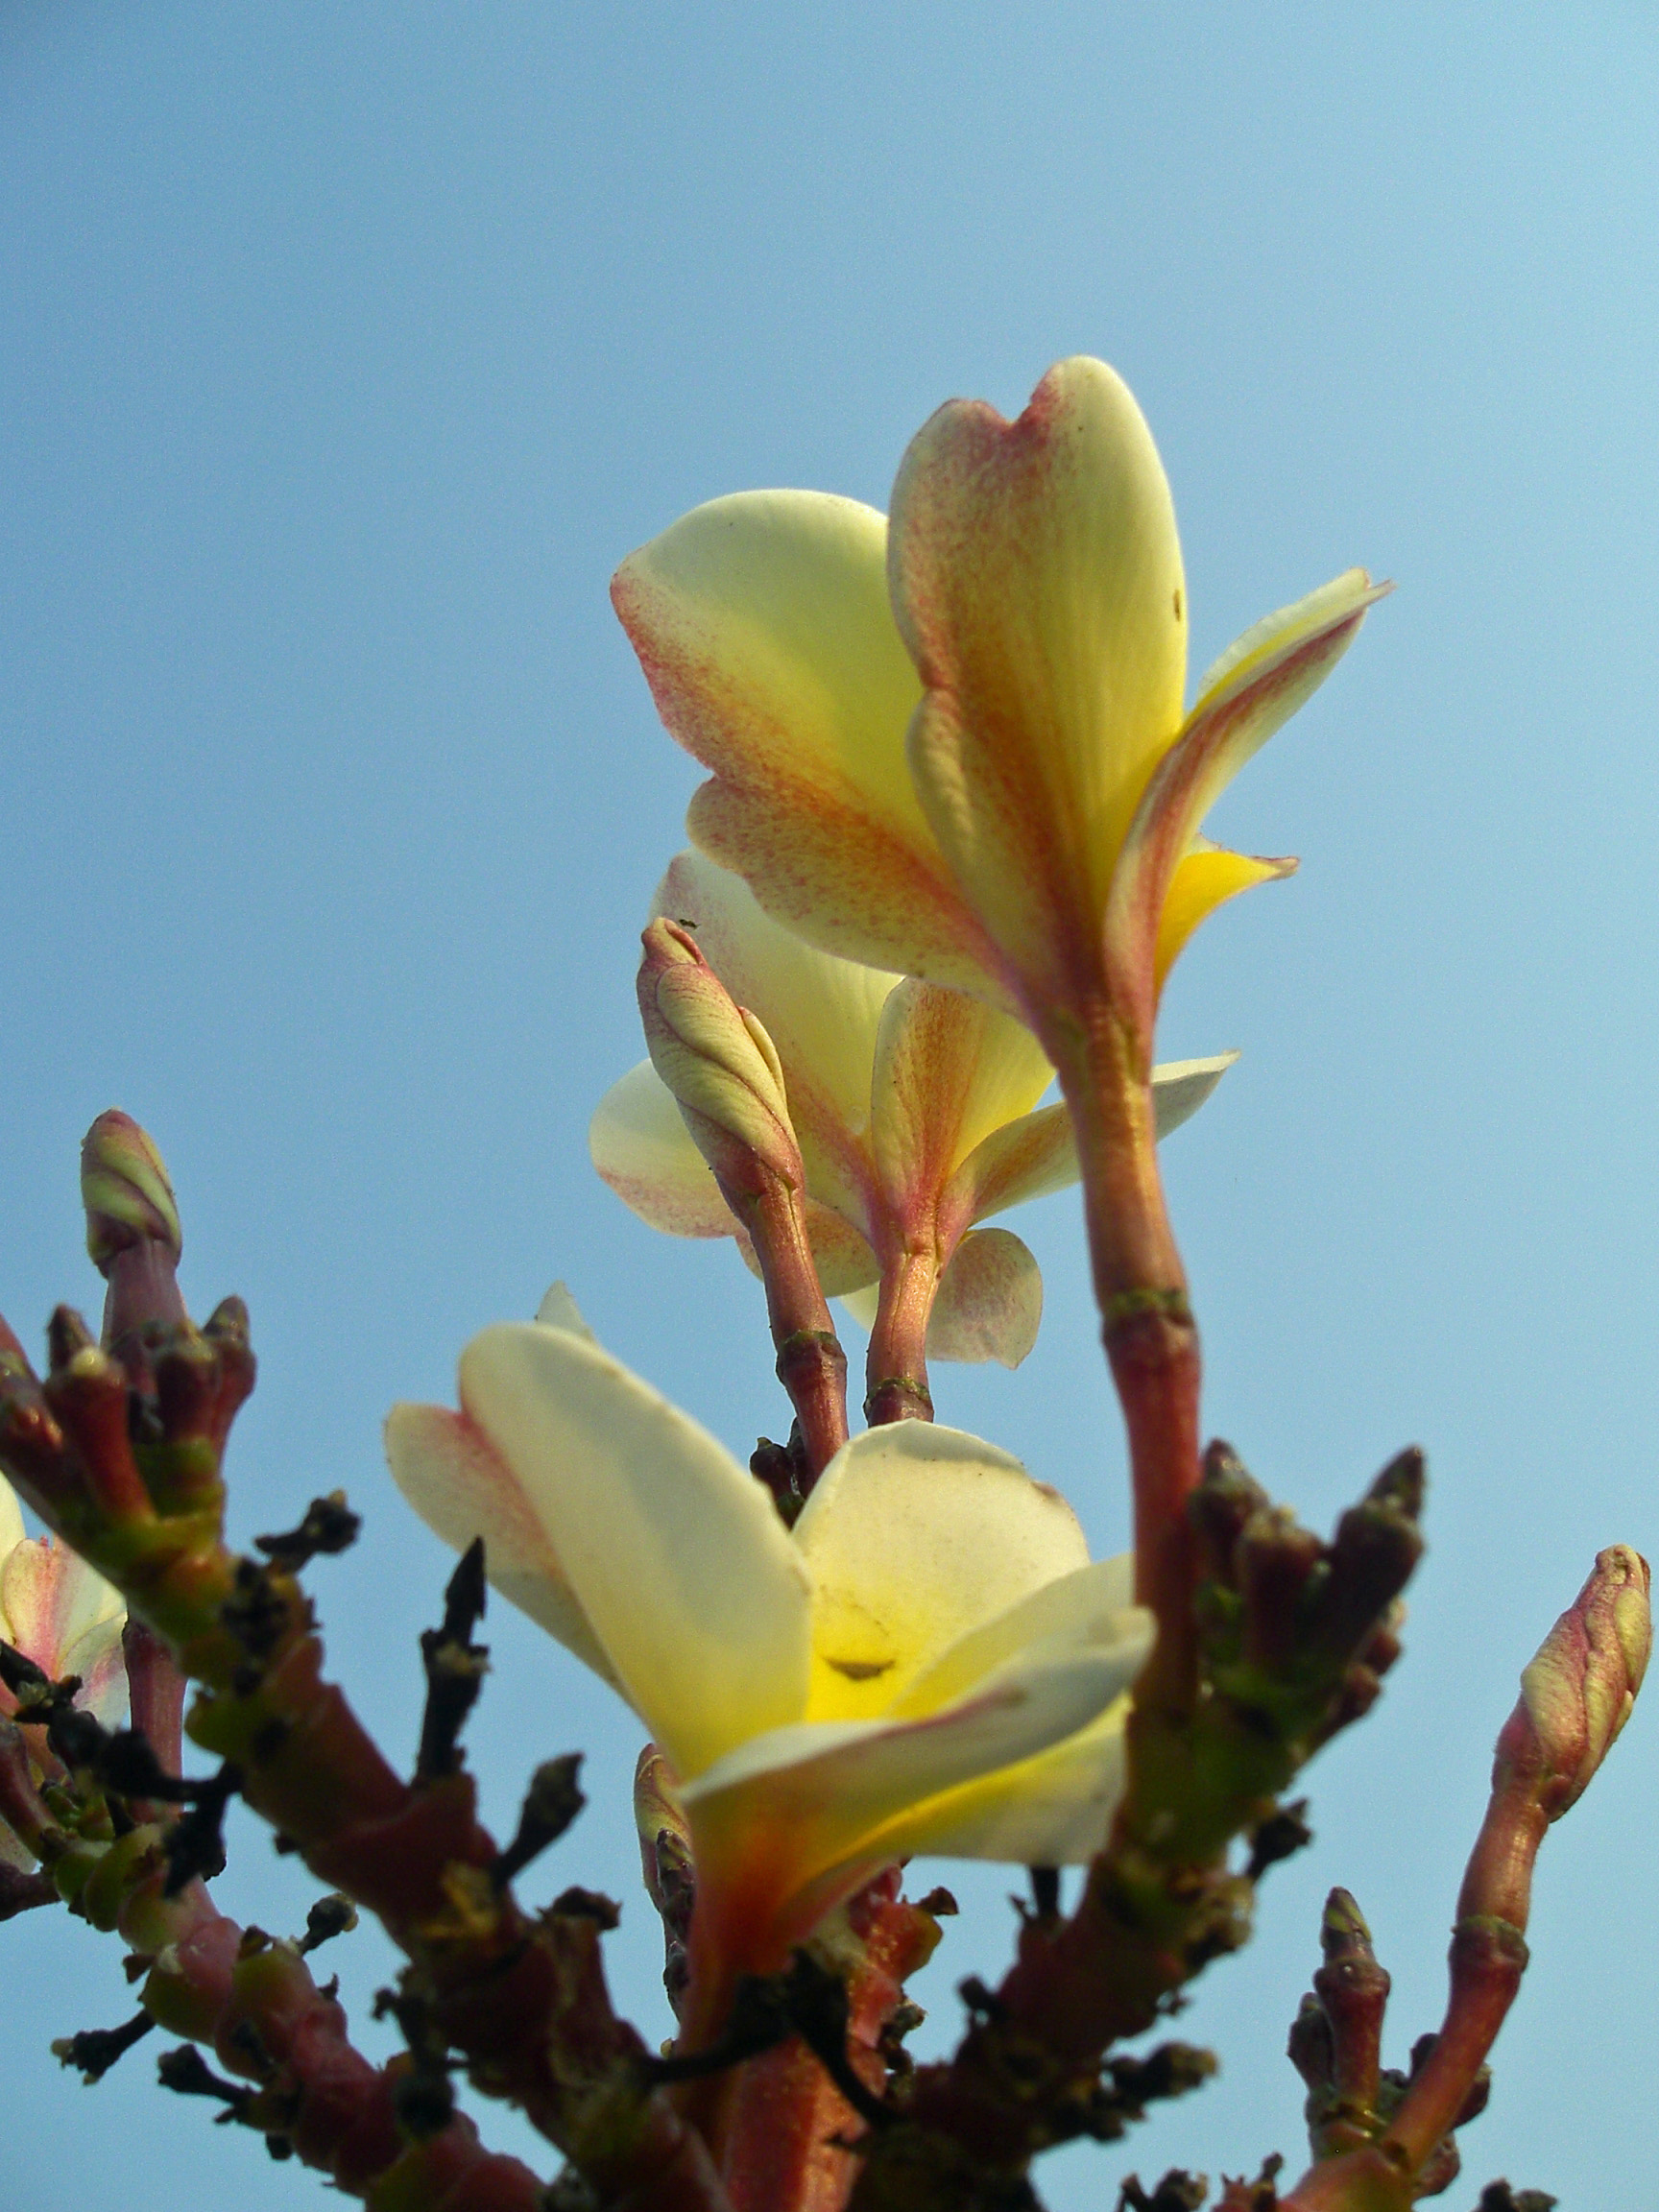 Yellow Plumeria flowers with buds